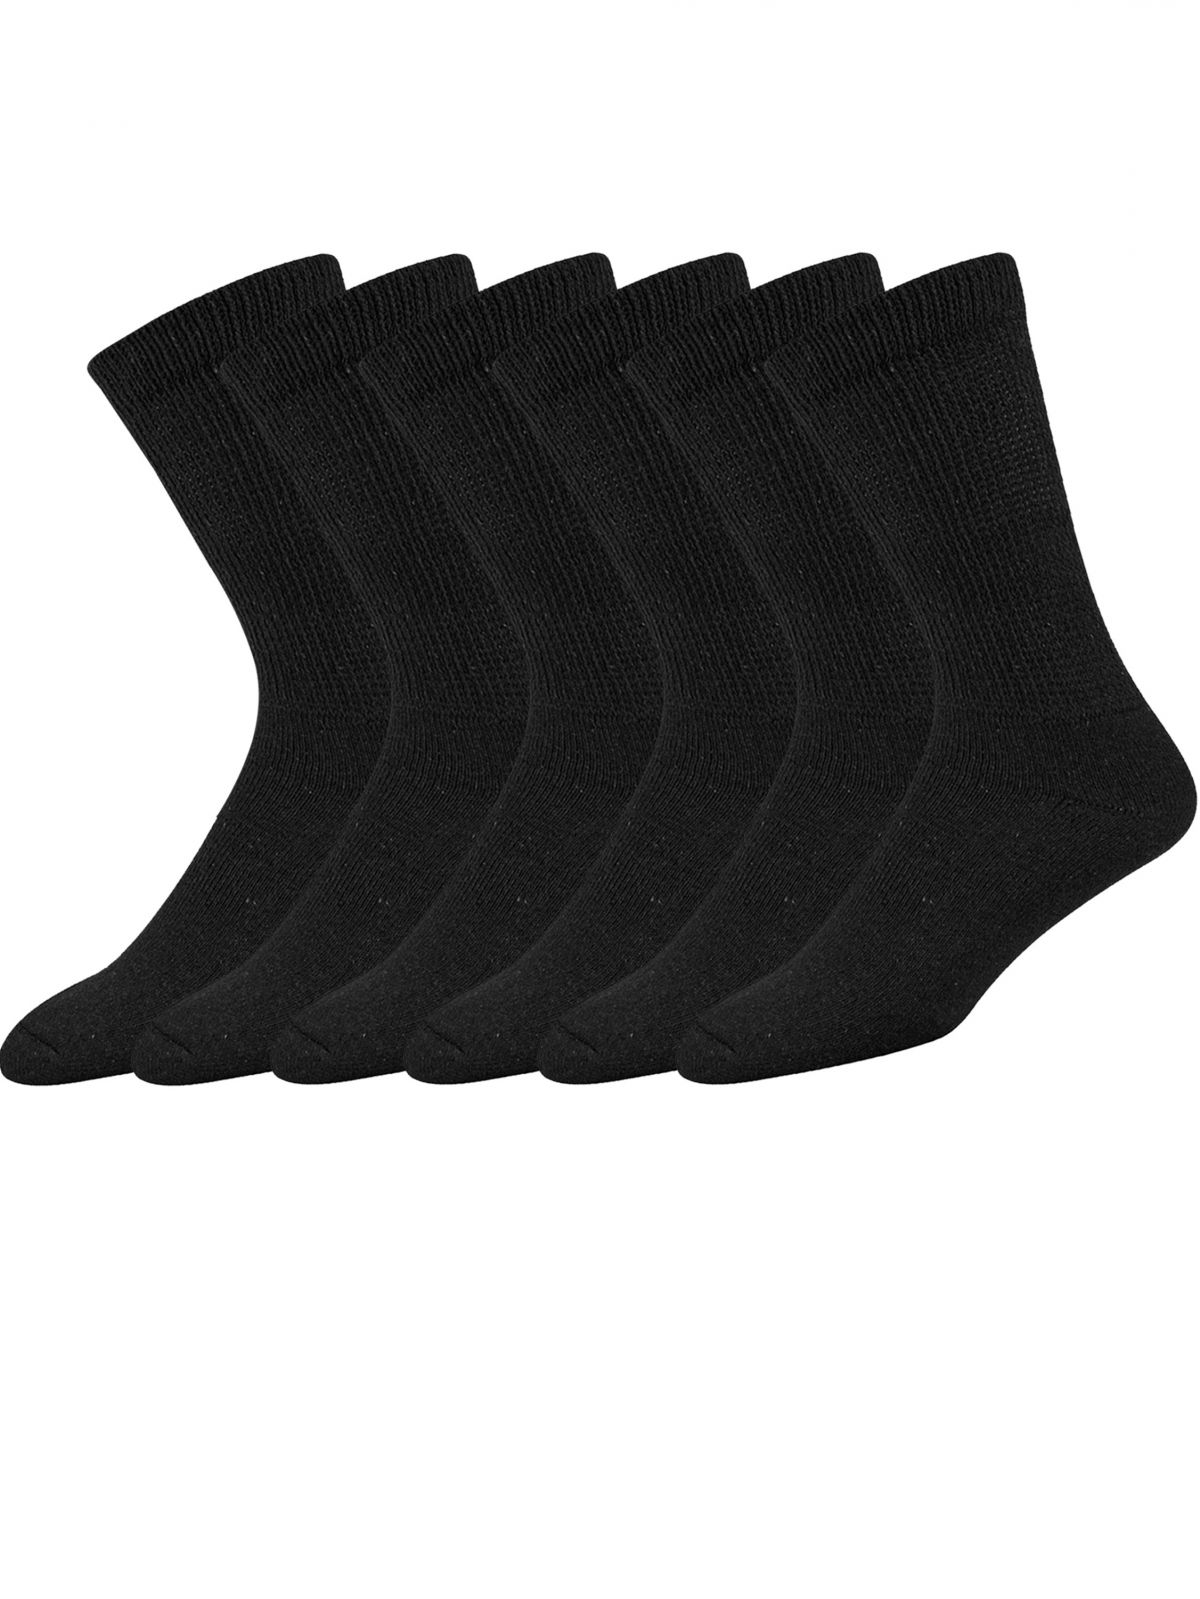 Accessories   Mens Extra Wide Fit Cotton Socks